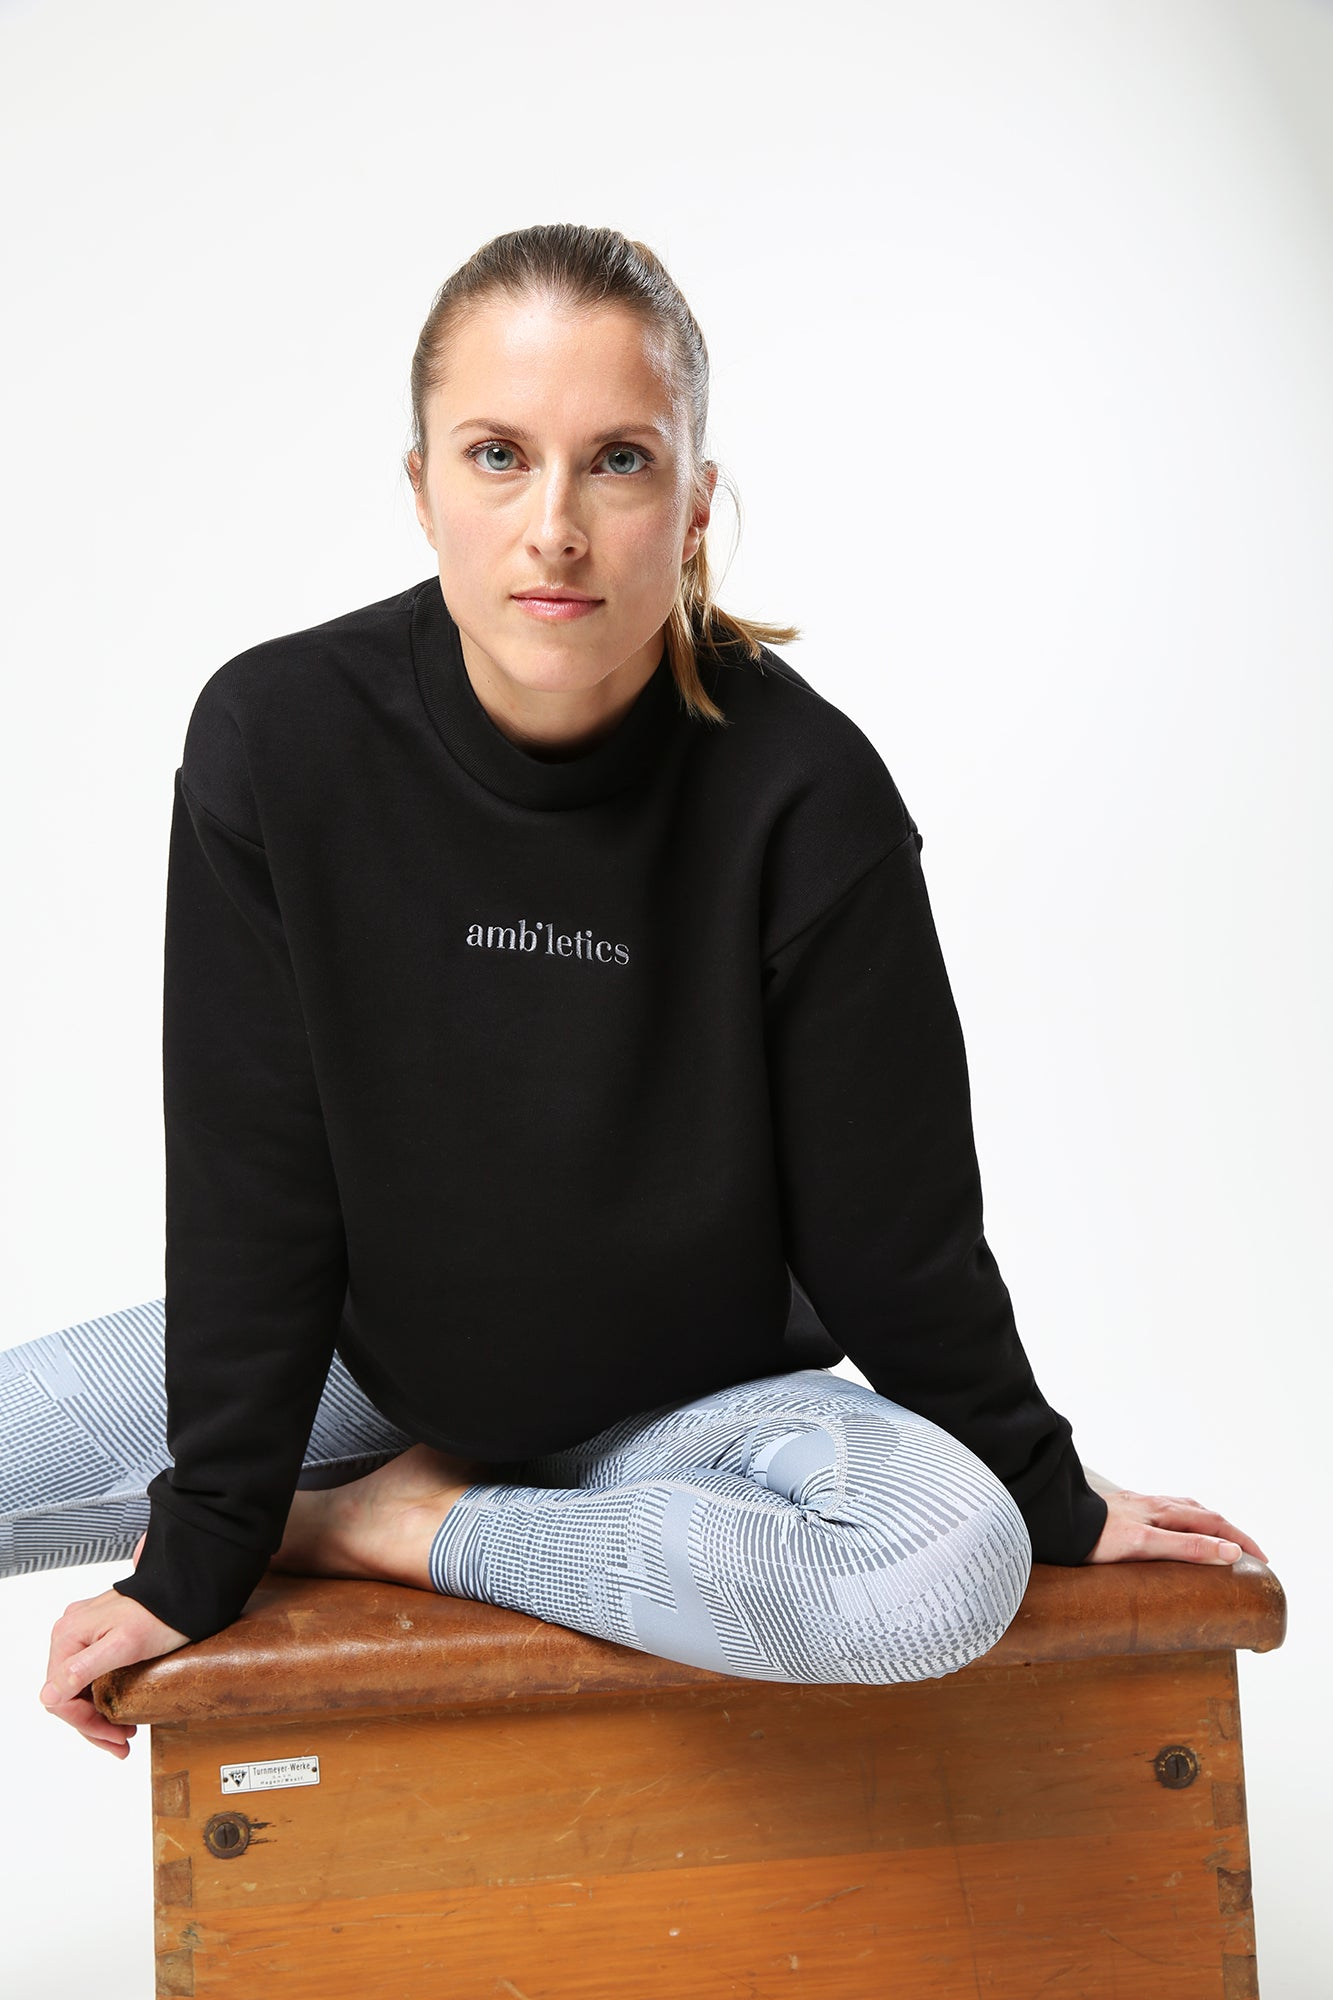 Ambiletics Logo Sweater